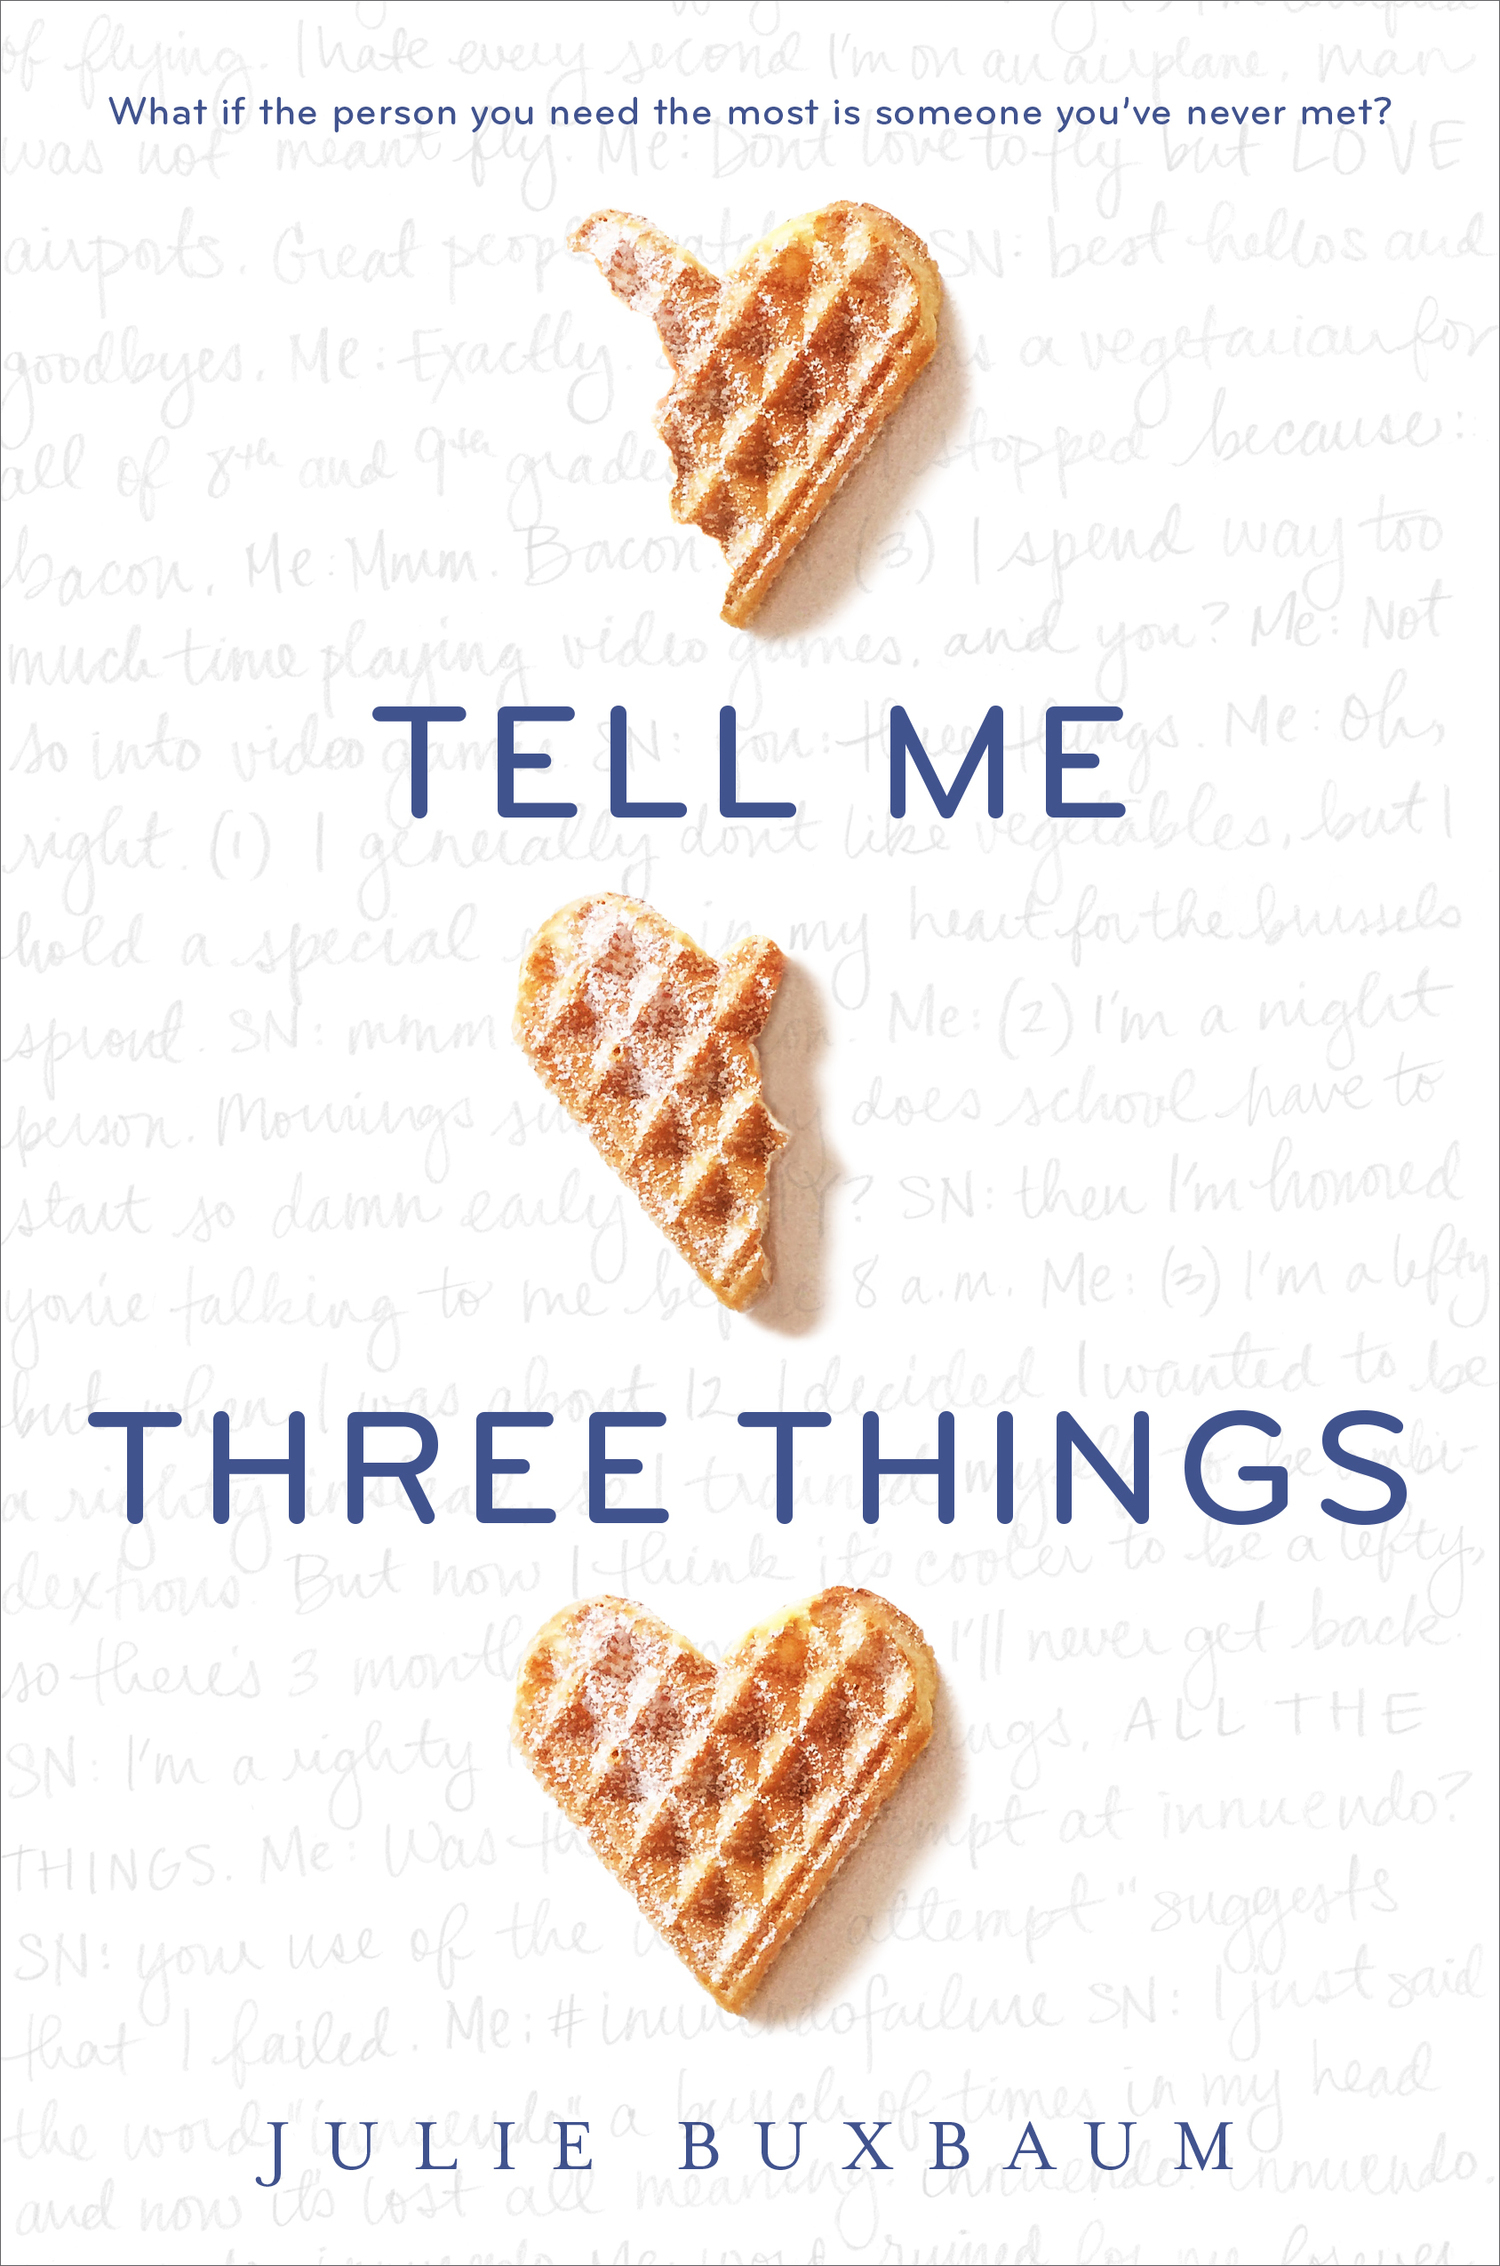 Julie Buxbaum - Tell Me Three Things